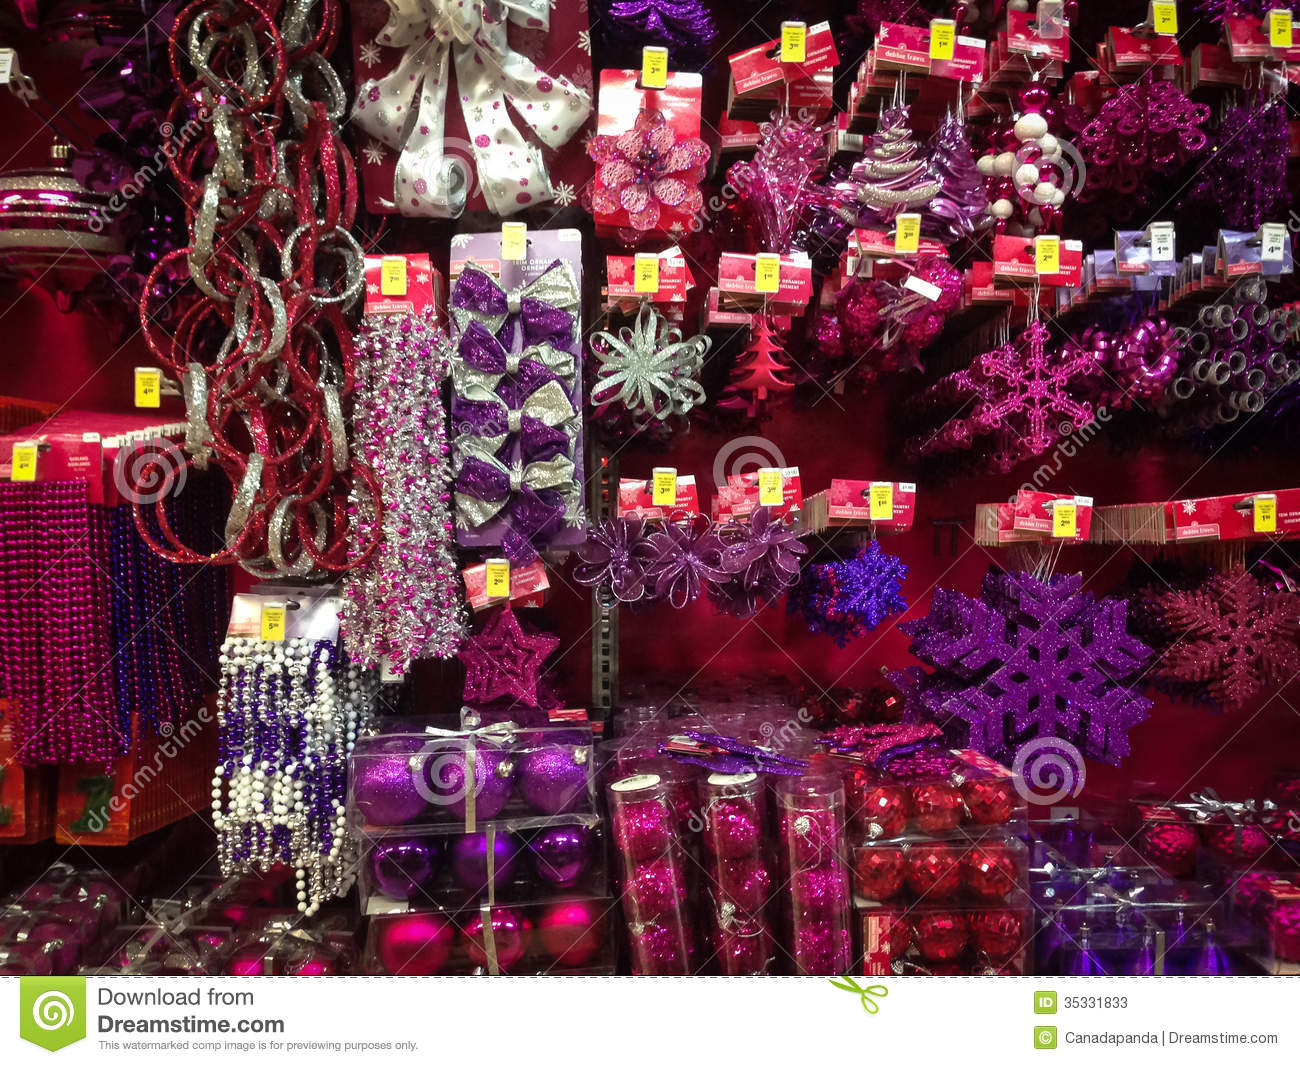 download christmas ornaments for sale editorial stock photo image of scene canada 35331833 - Christmas Decorations Canada